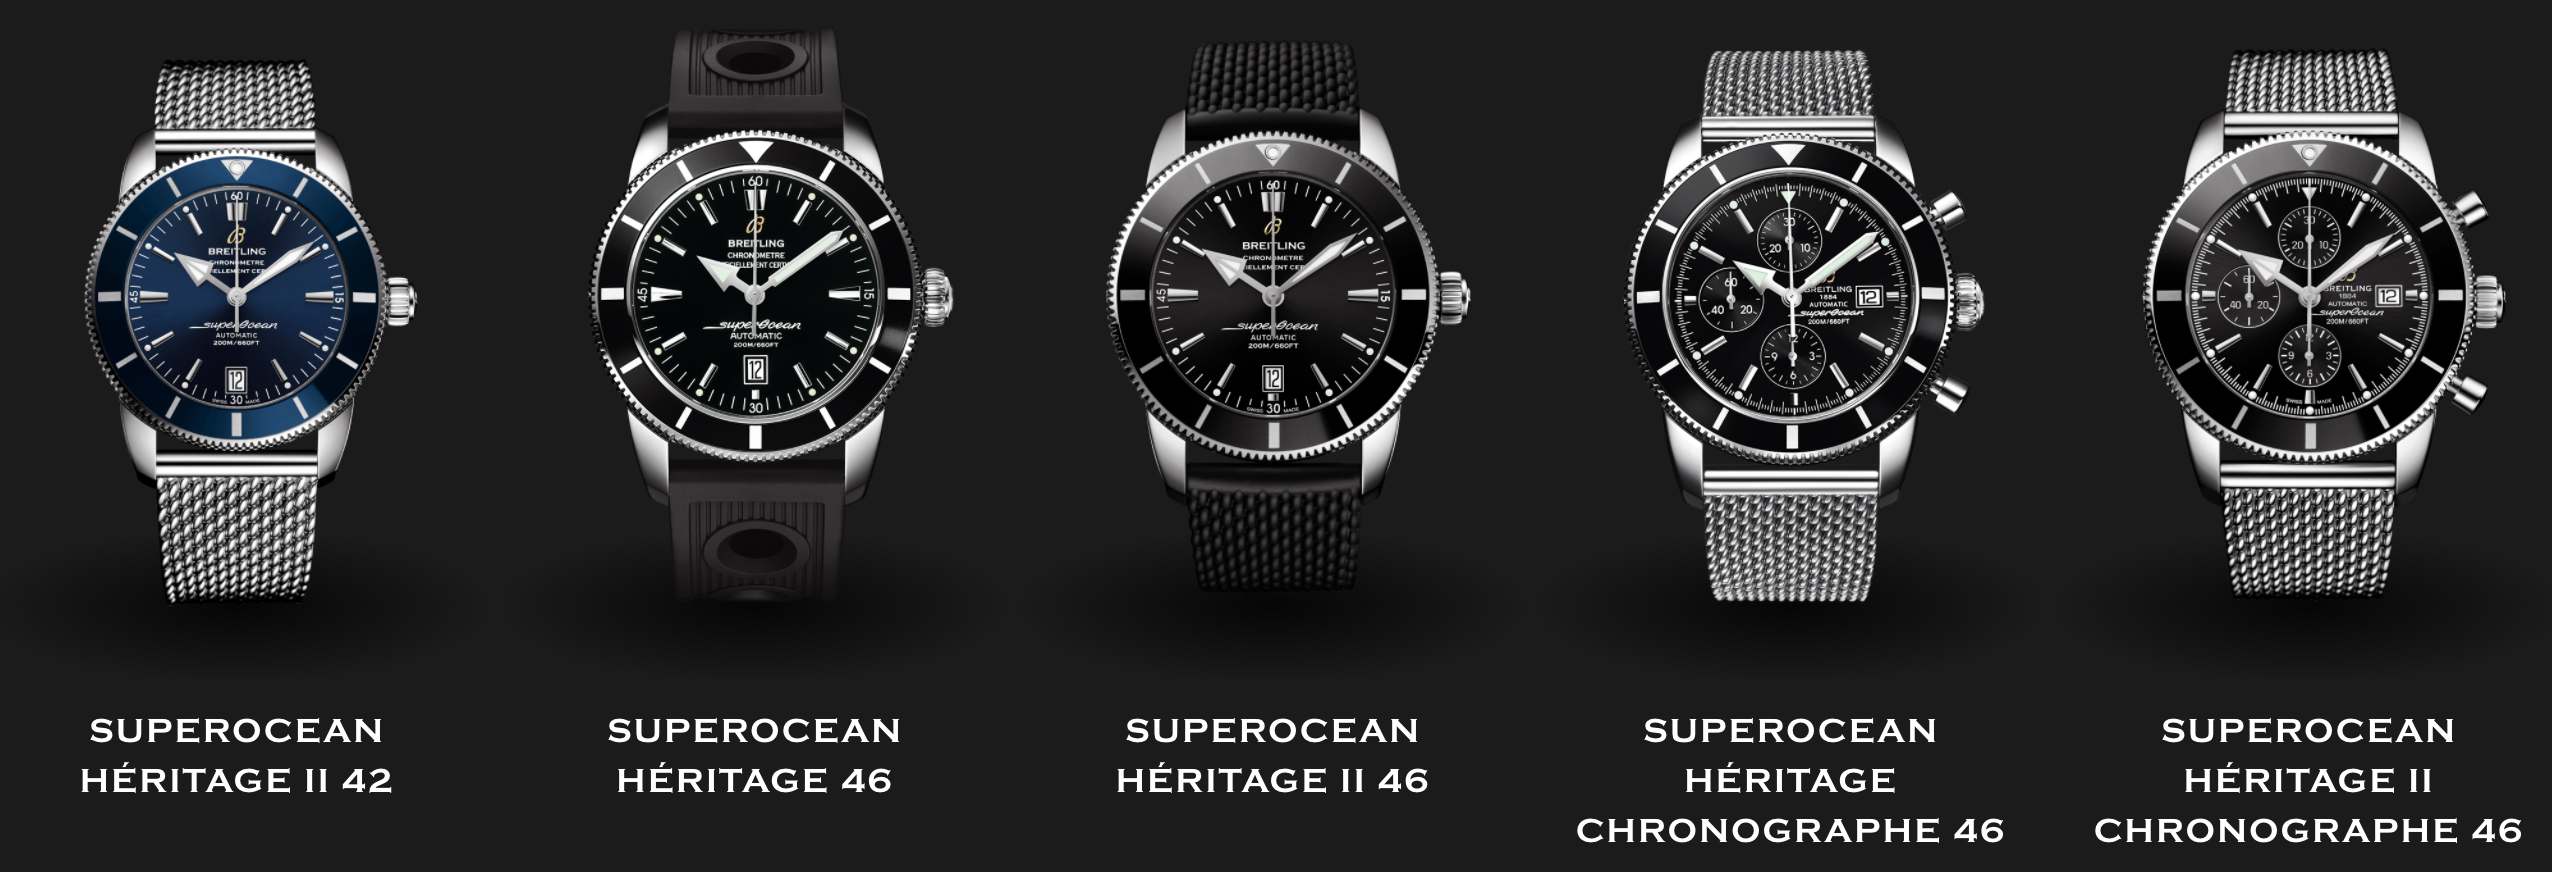 Breitling Superocean Collection